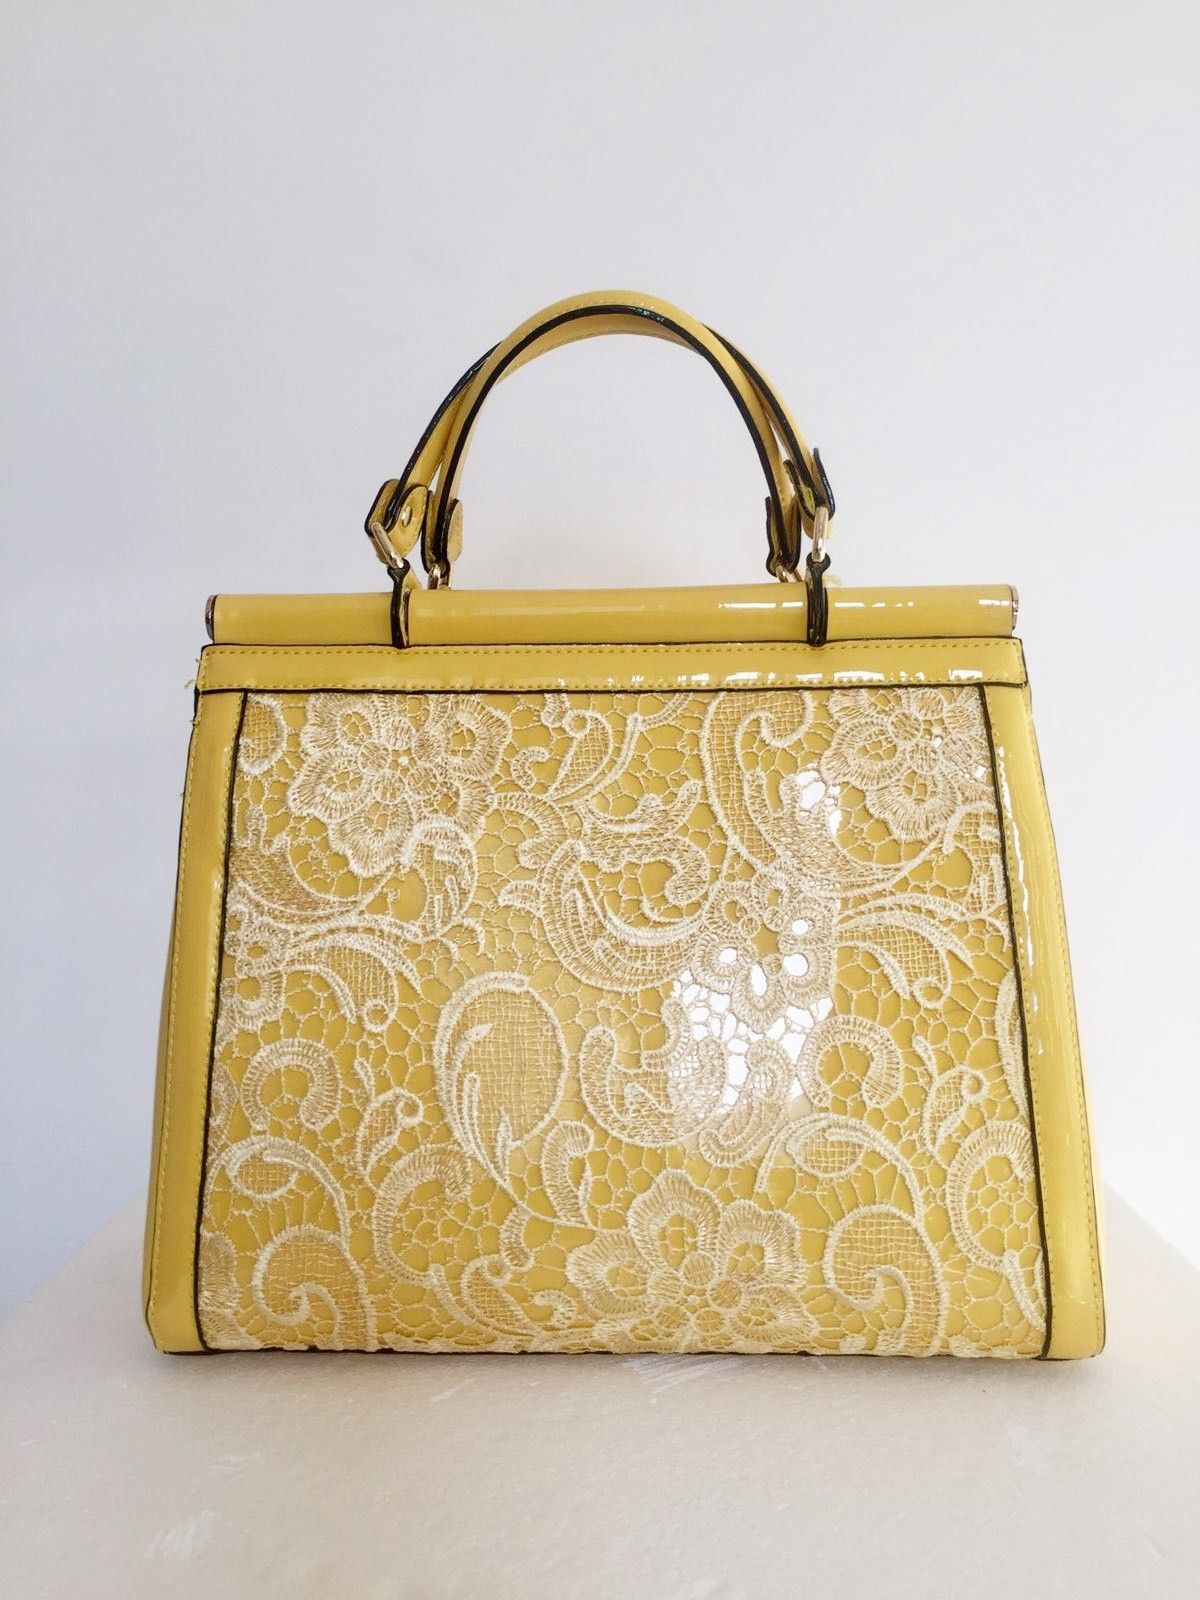 Patent leather handbag with lace Cod.1013